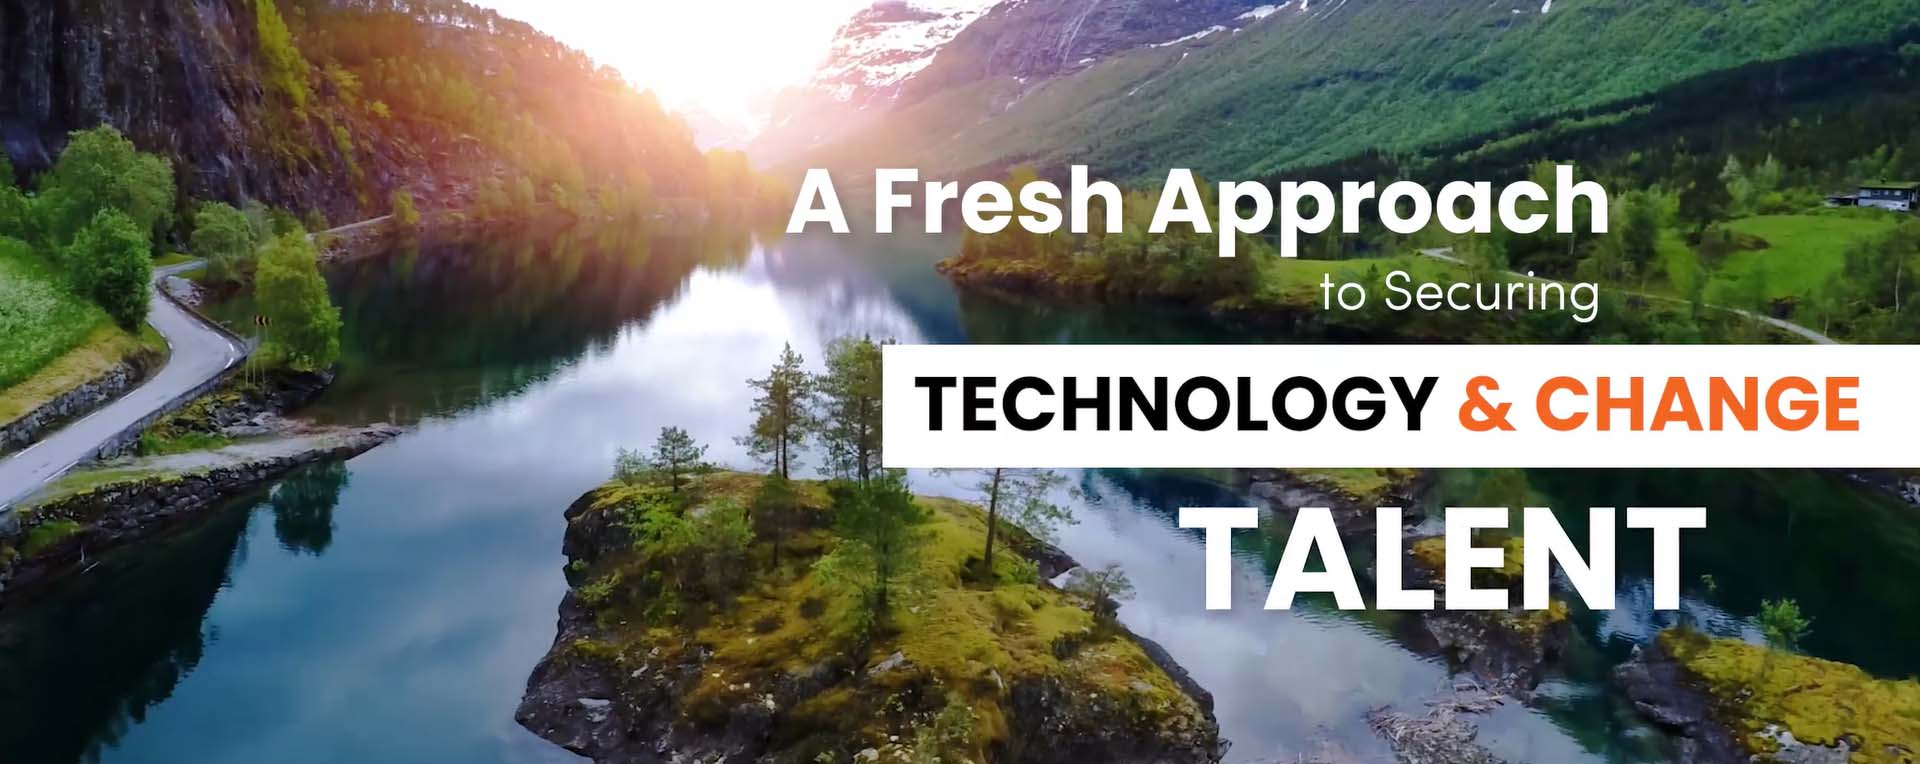 A Fresh Approach to Securing Technology & Change Talent